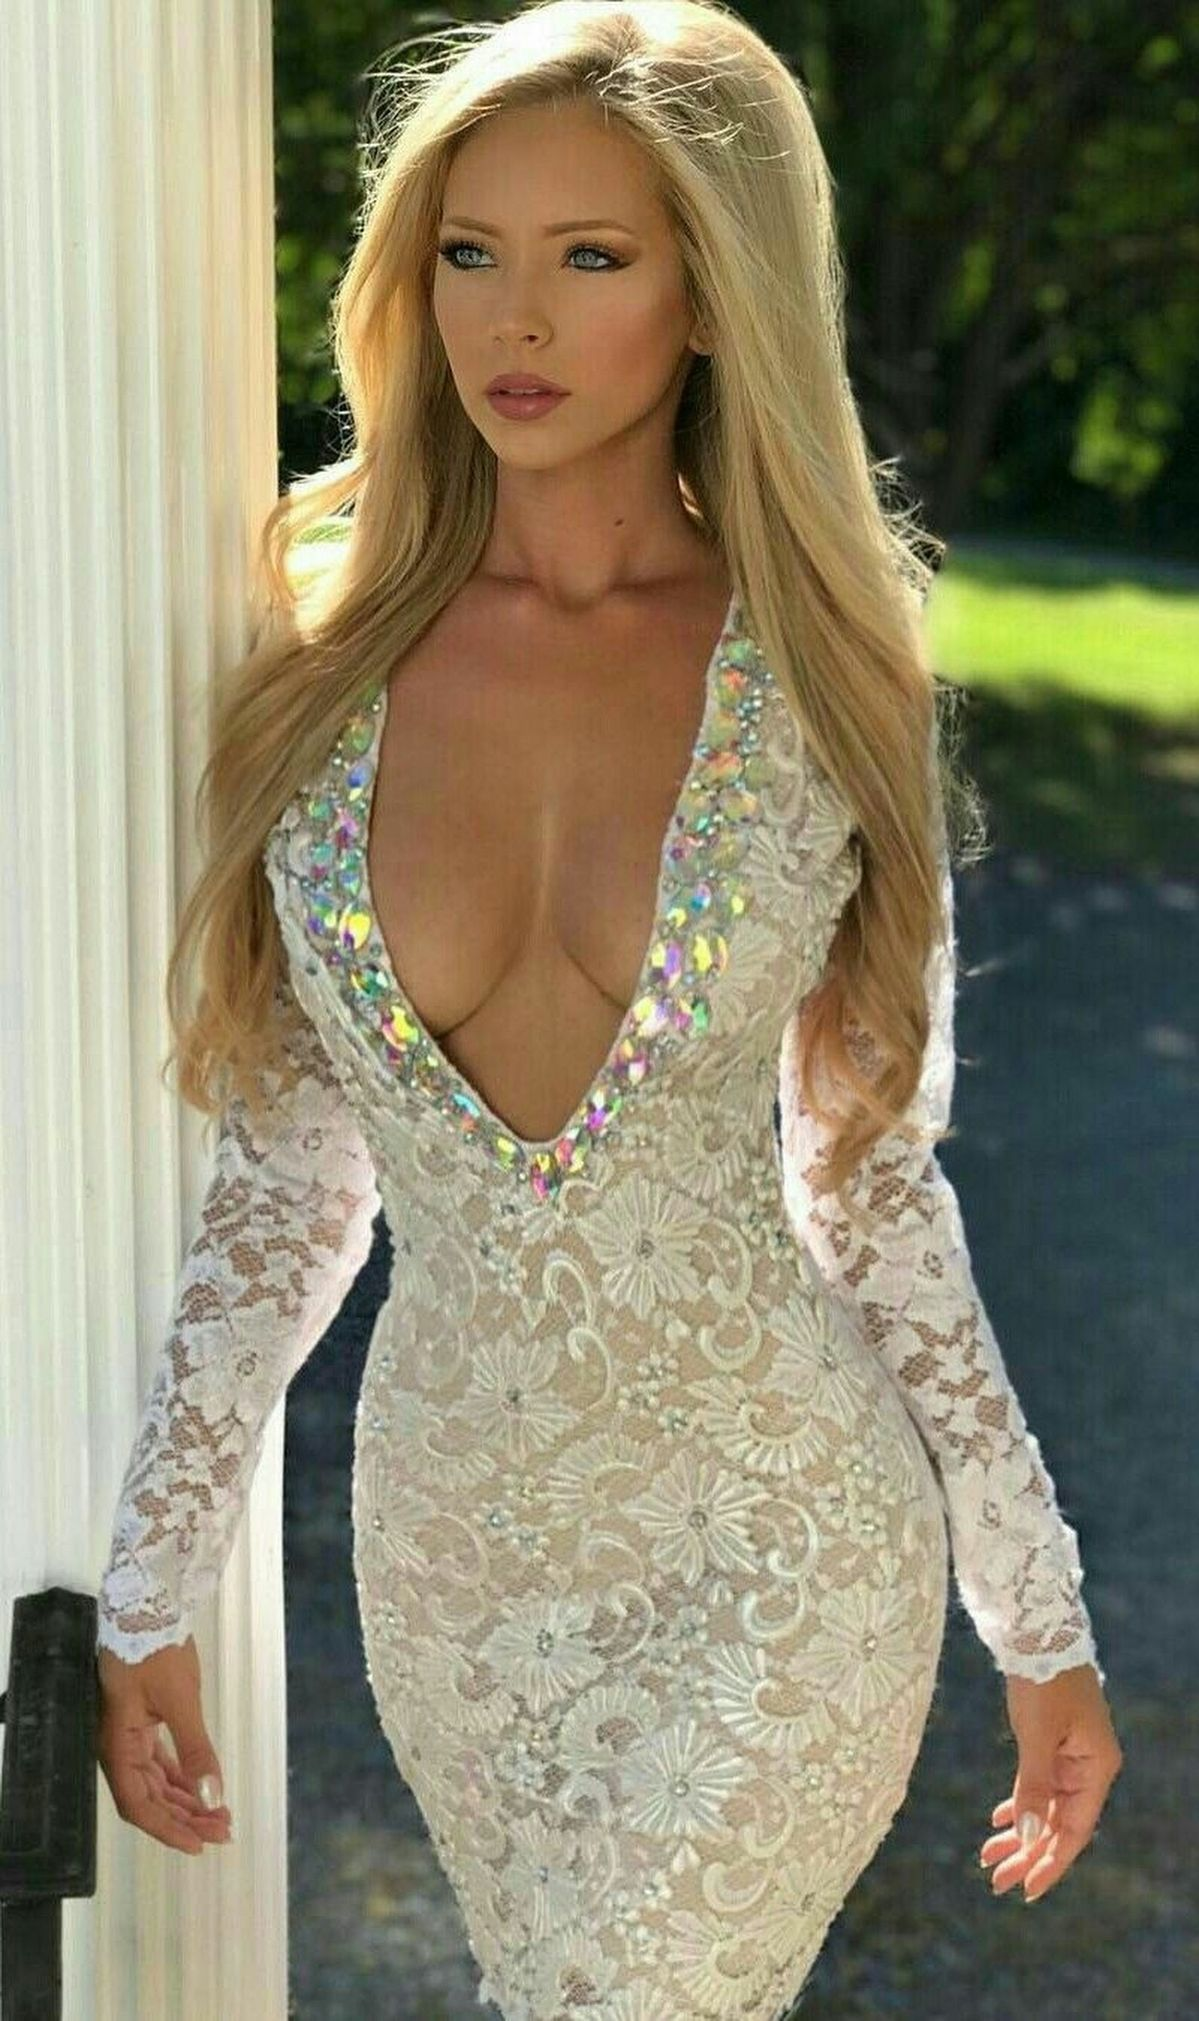 Wow Amanda Taylor is definitely a modern day Helen of troy because